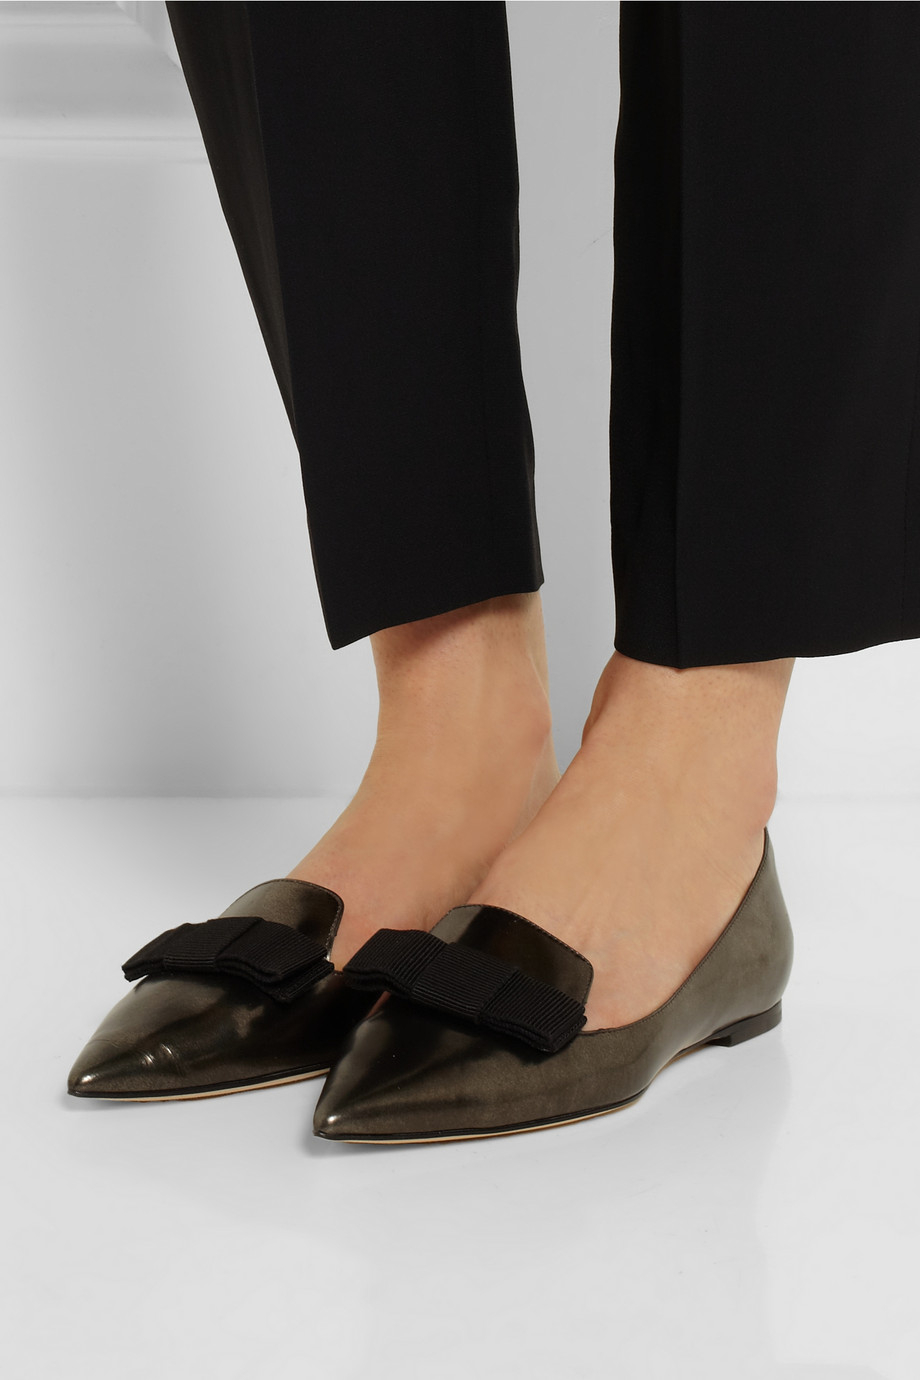 Mirrored Leather Shoes